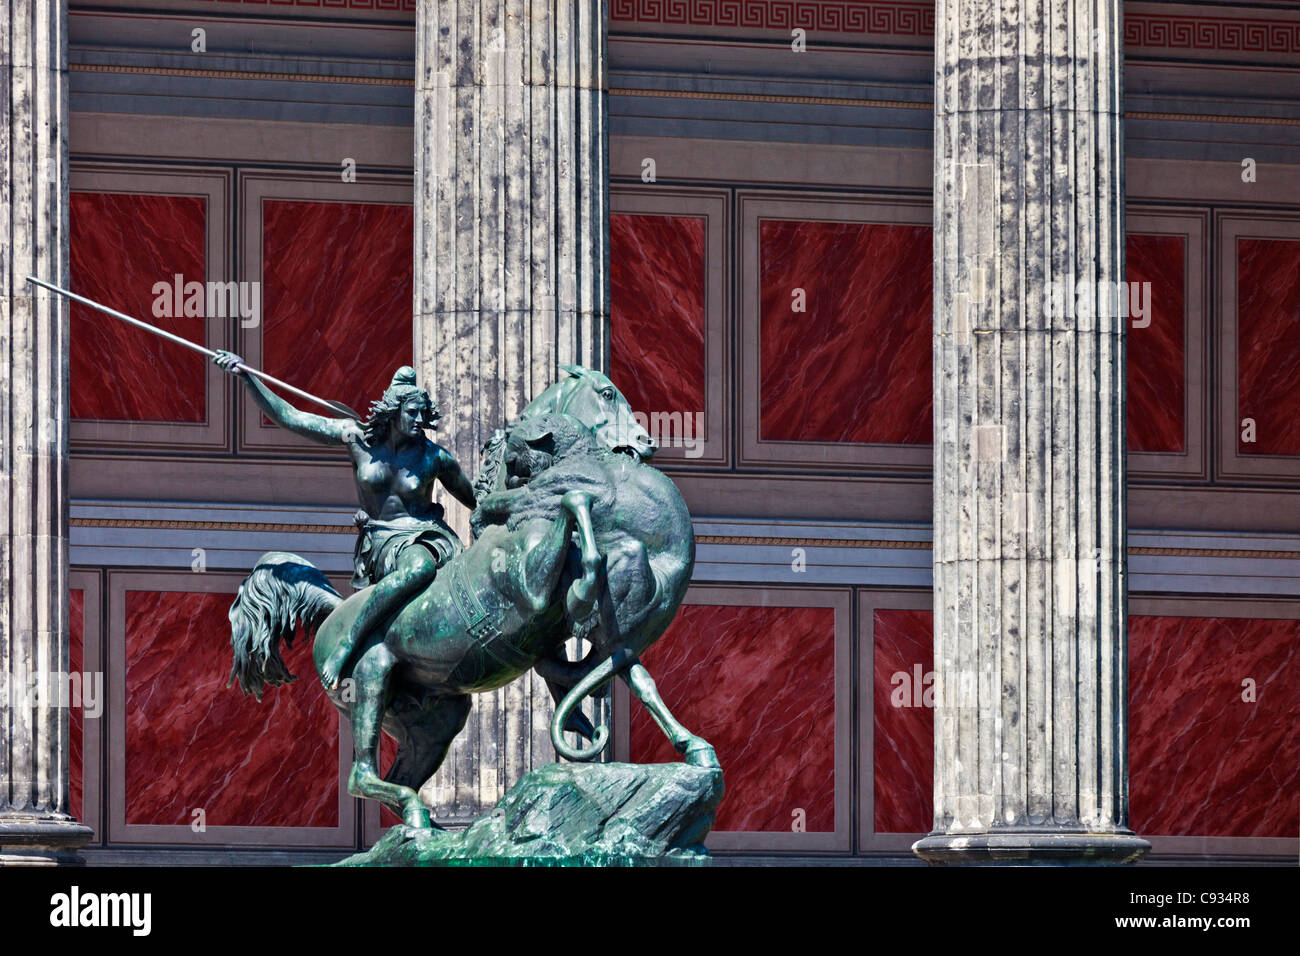 The Lion Fighter (Lowenkampfer) sculpture outside the main entrance of the Altes Museum, Museum Island, Mitte, Berlin, - Stock Image